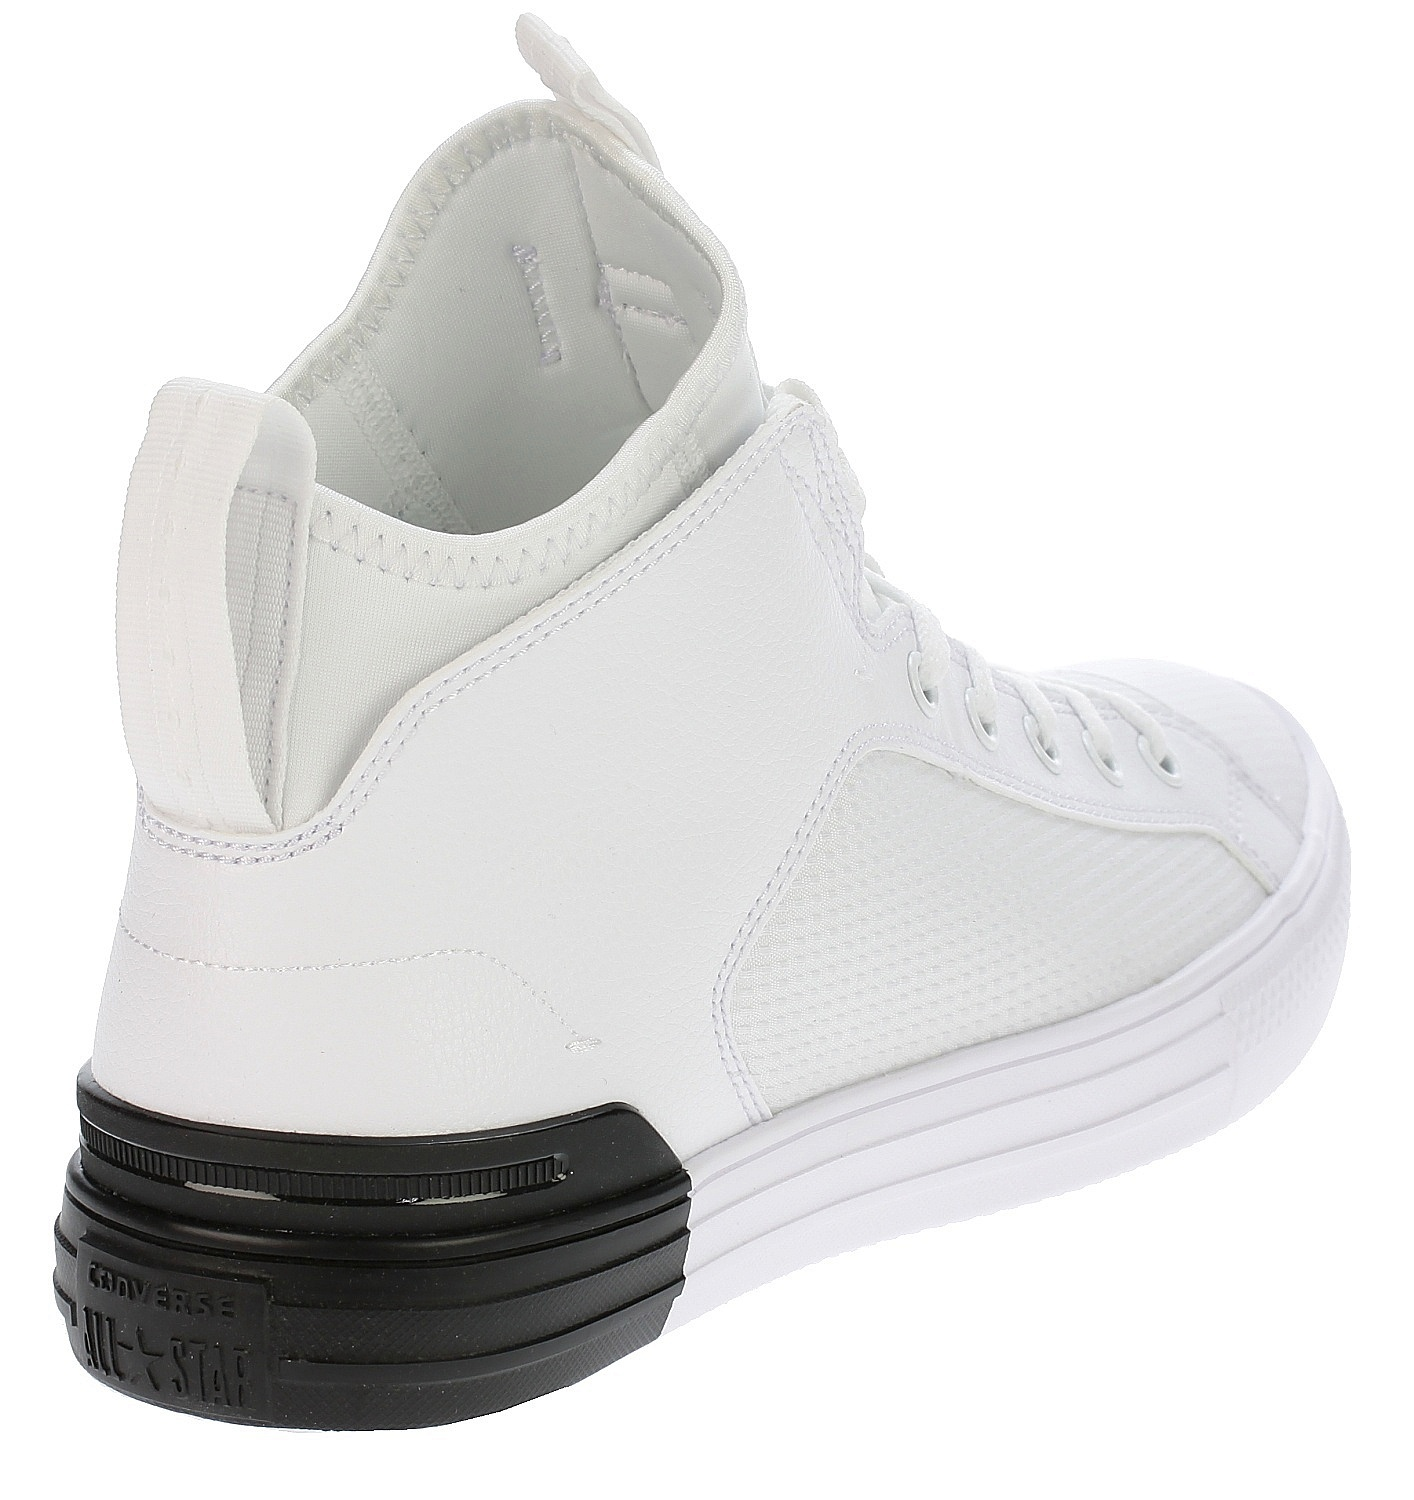 buy popular 83d17 1f23d ... boty Converse Chuck Taylor All Star Ultra Mid - 159628 White White Black  ...